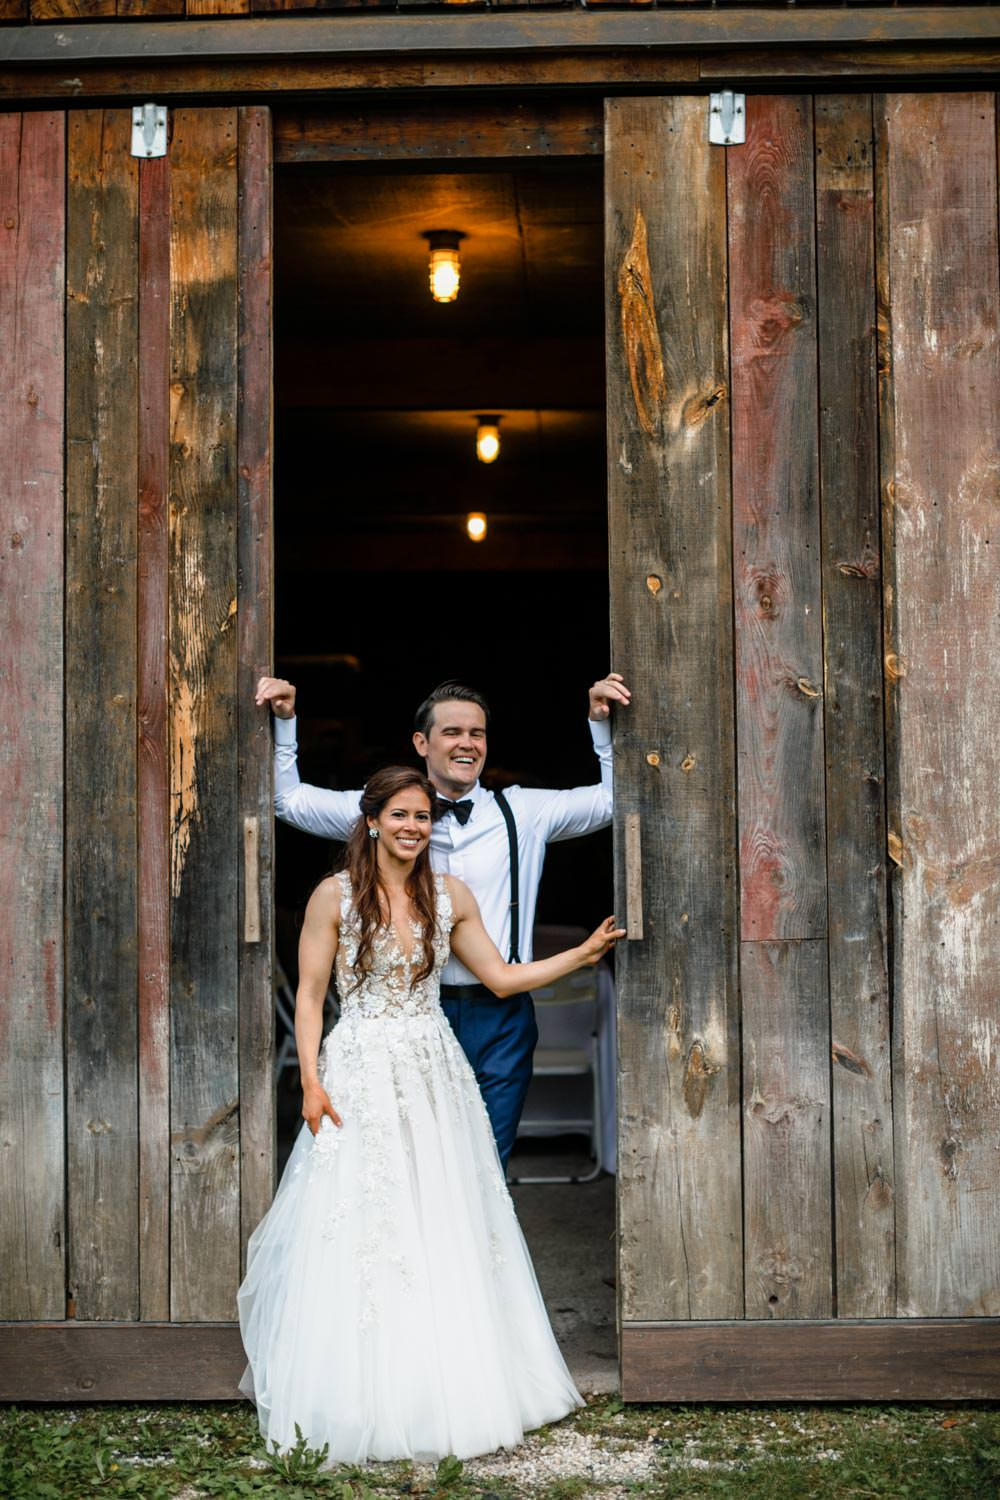 bride and groom pose for vermont wedding photographer in reception barn doorway